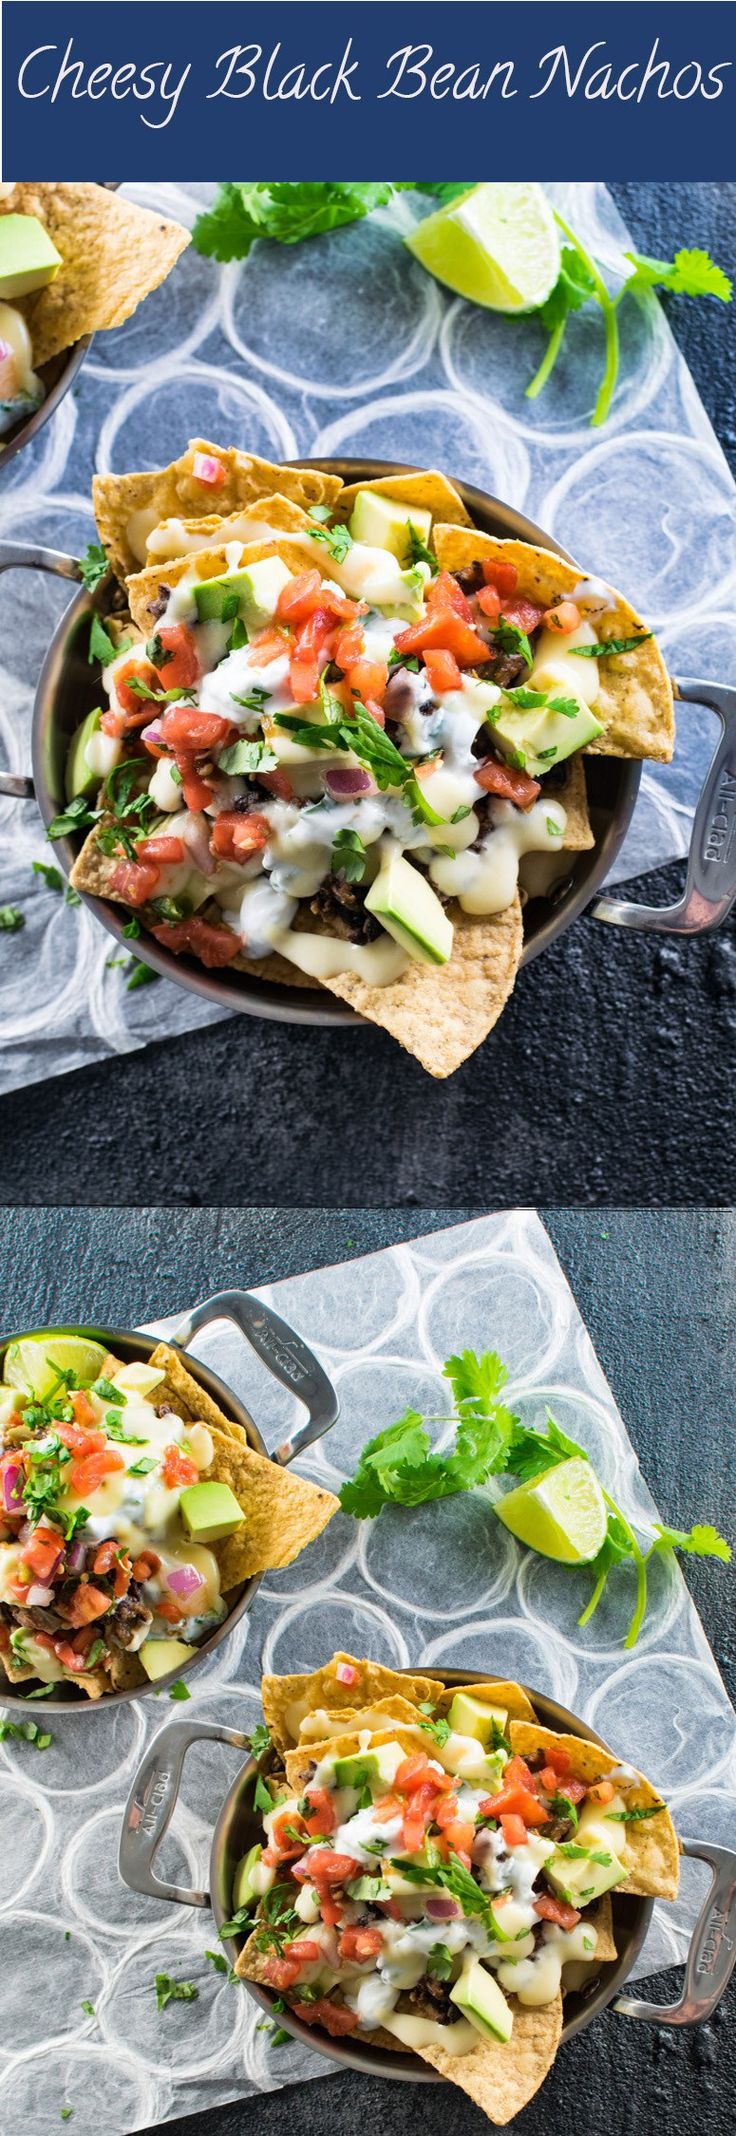 Cheesy Black Bean Nachos | These vegetarian black bean nachos are topped with a creamy cheese sauce, avocado and pico de gallo to ensure tasty goodness in every bite!  They make a great game day appetizer or easy weeknight dinner.